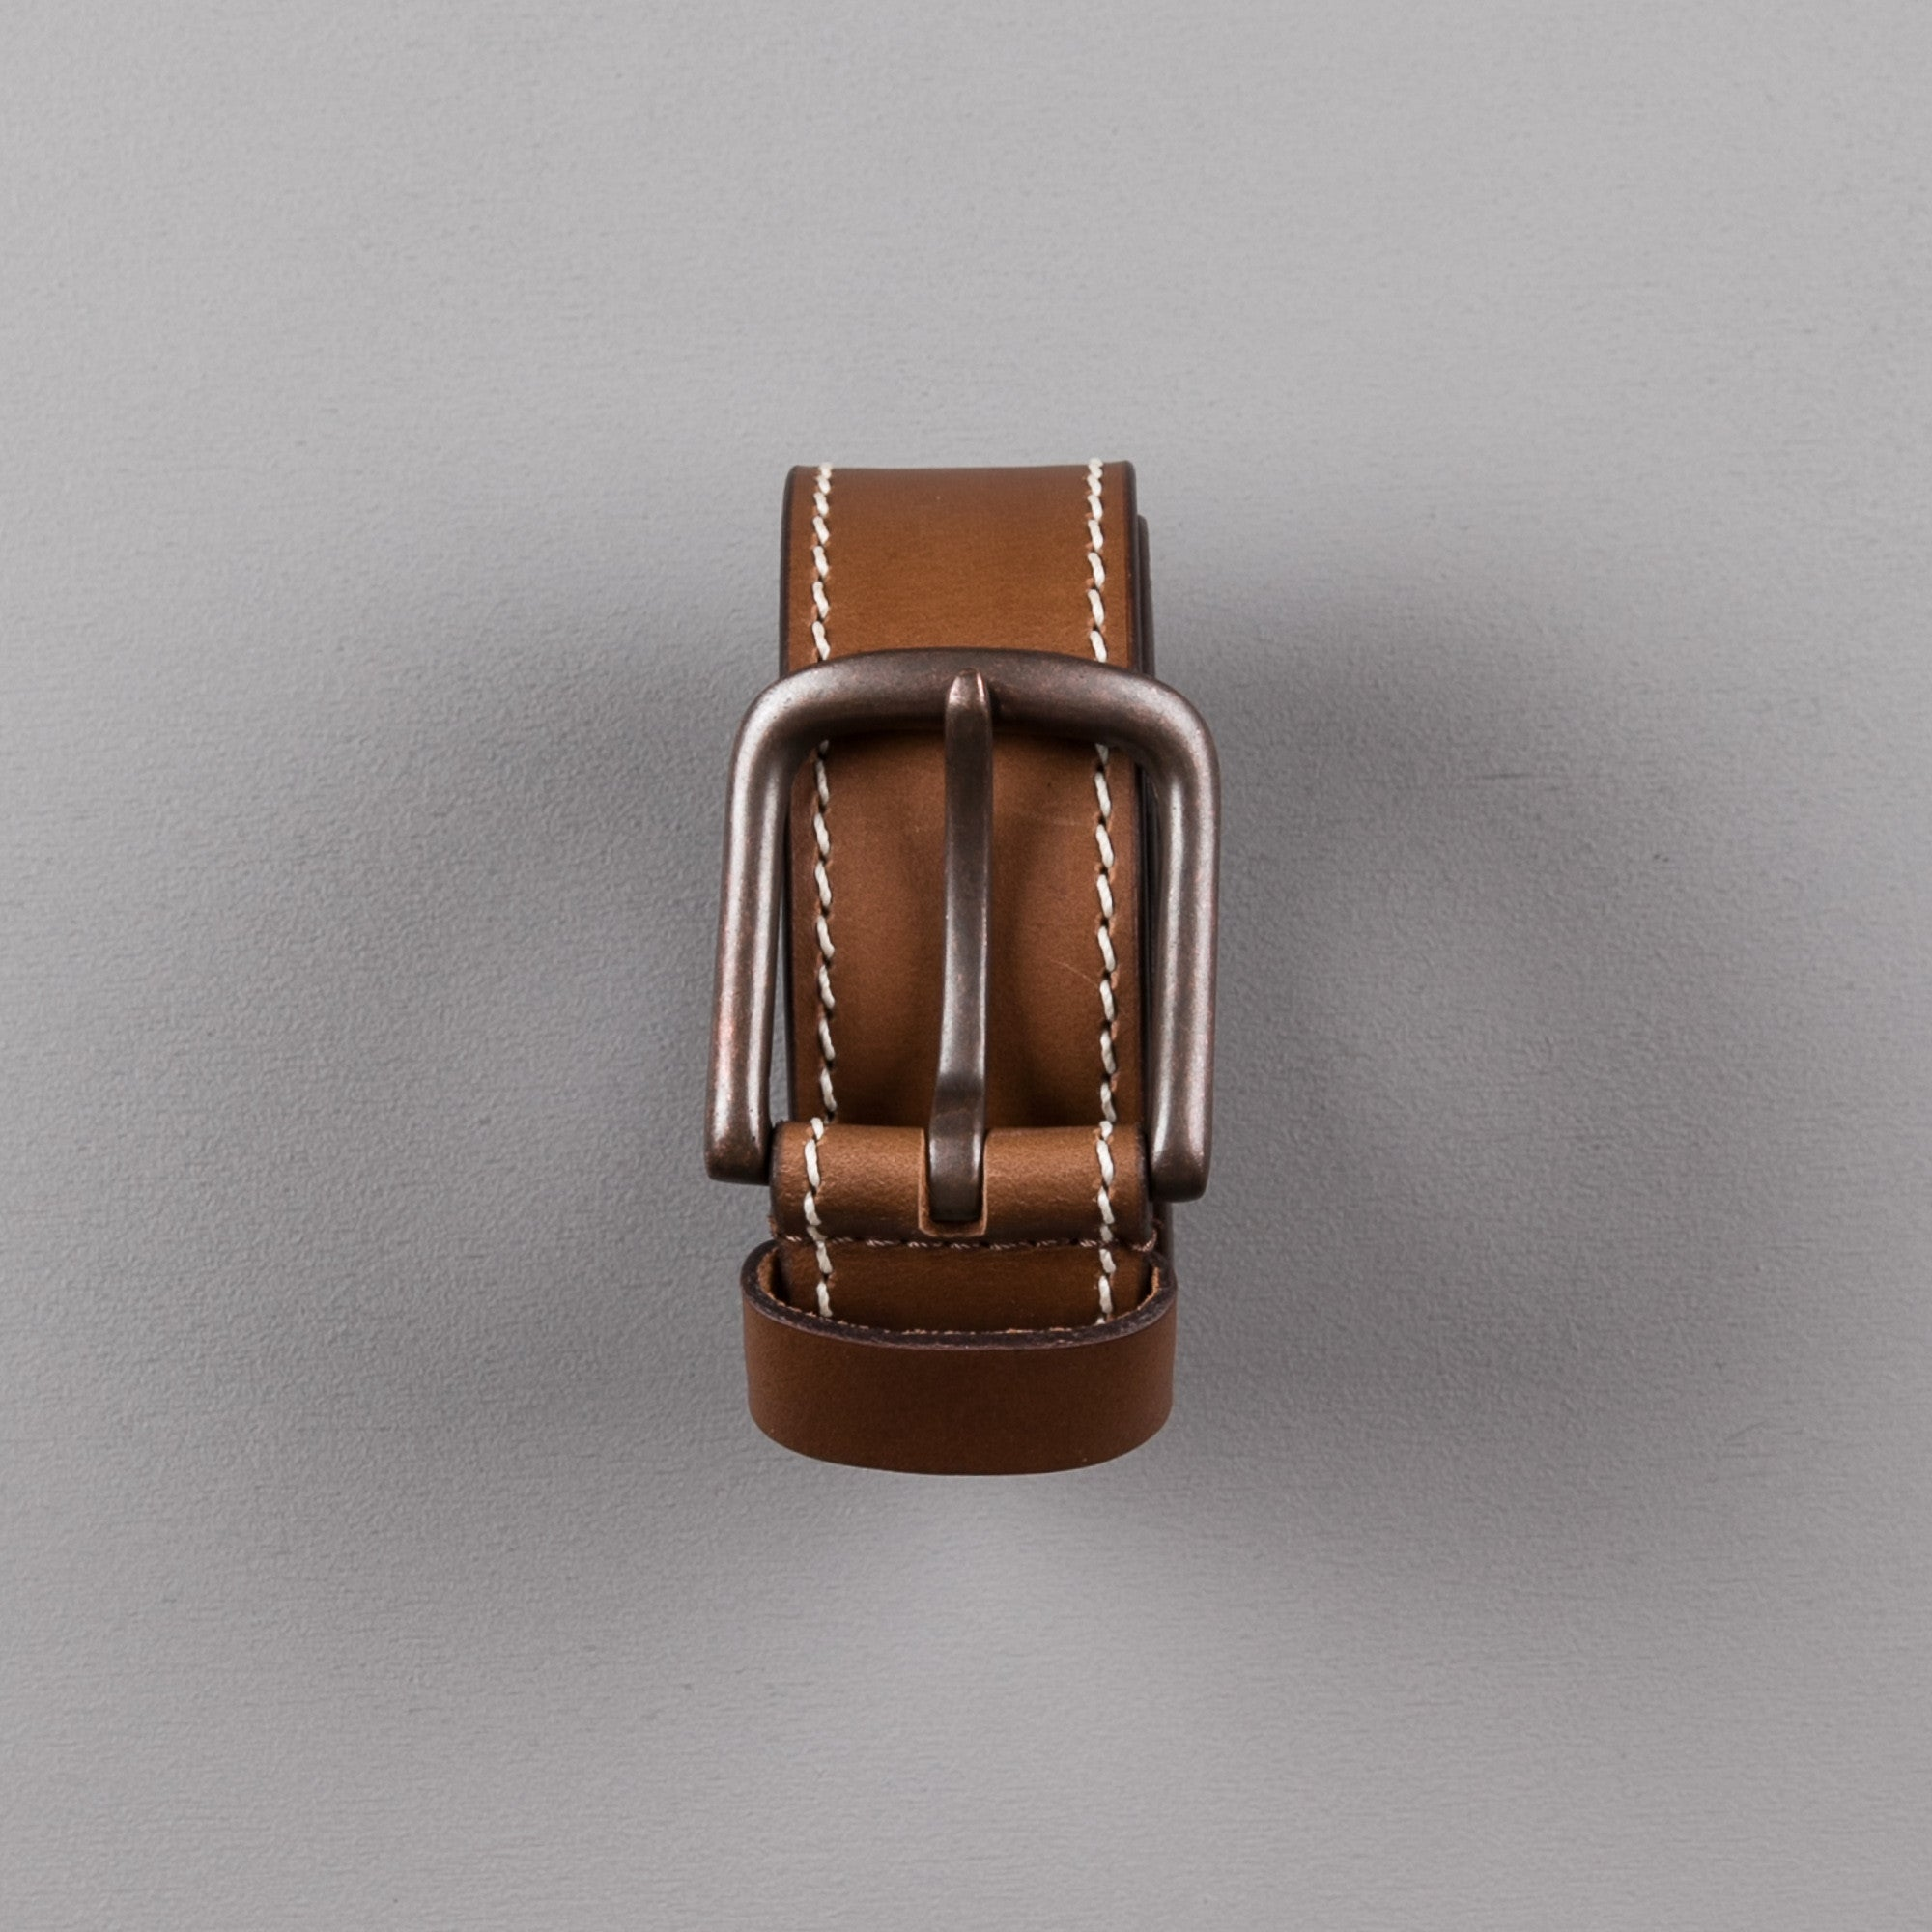 Dickies Branchville Belt - Brown